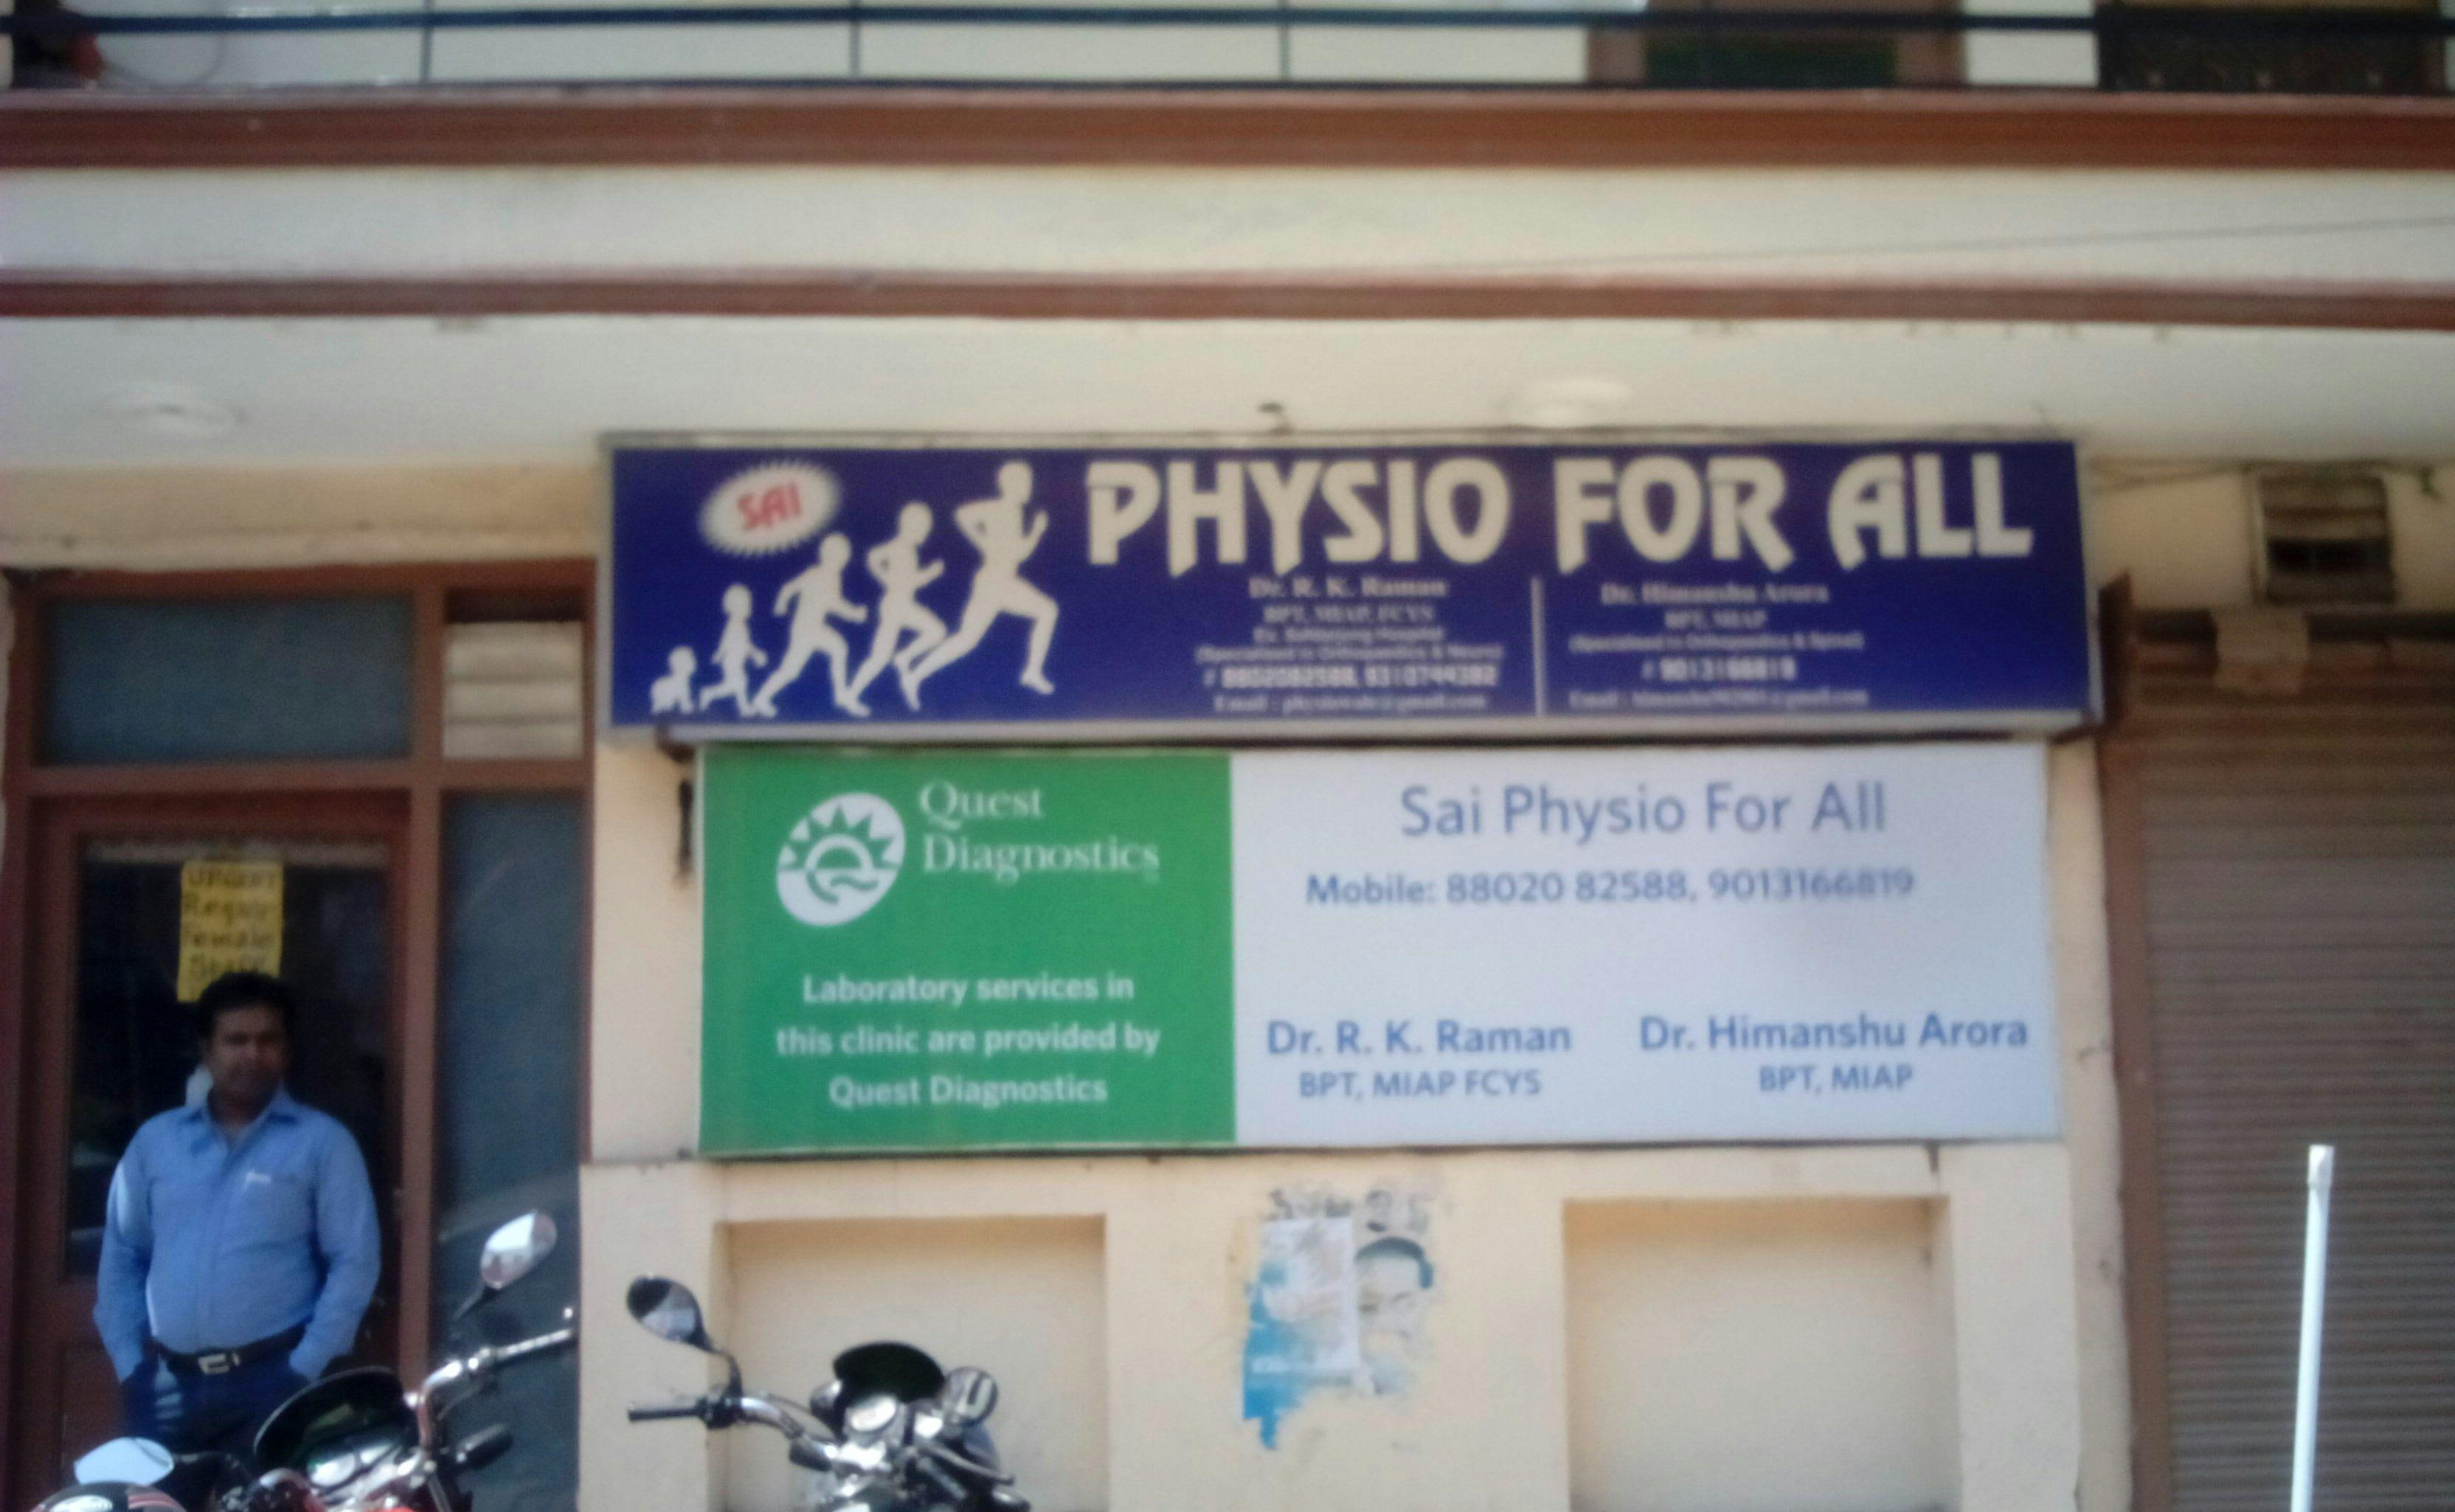 Sai Physio For All